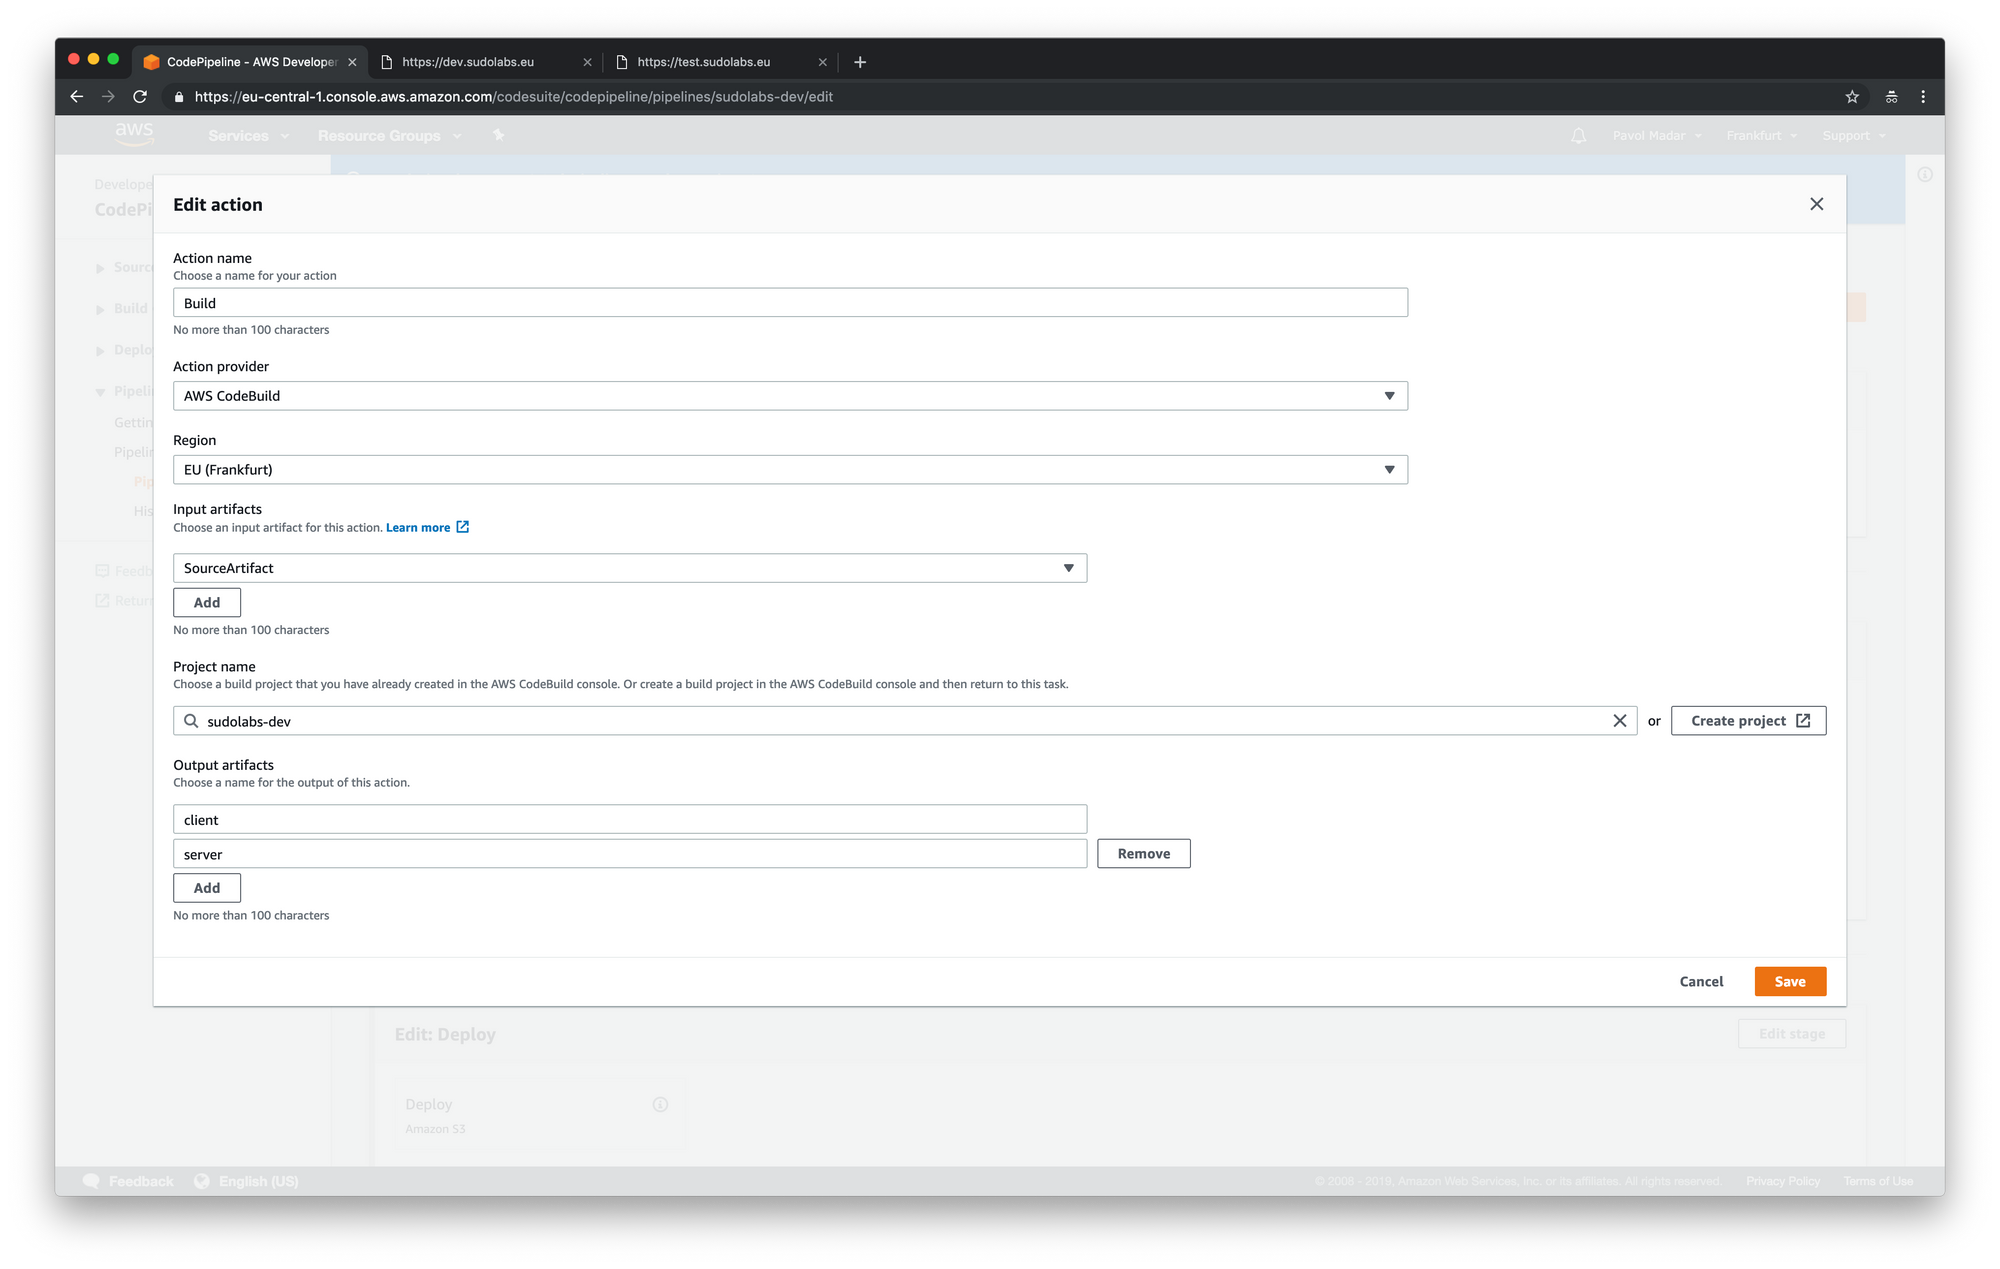 AWS CodePipeline - add output artifacts into the build step